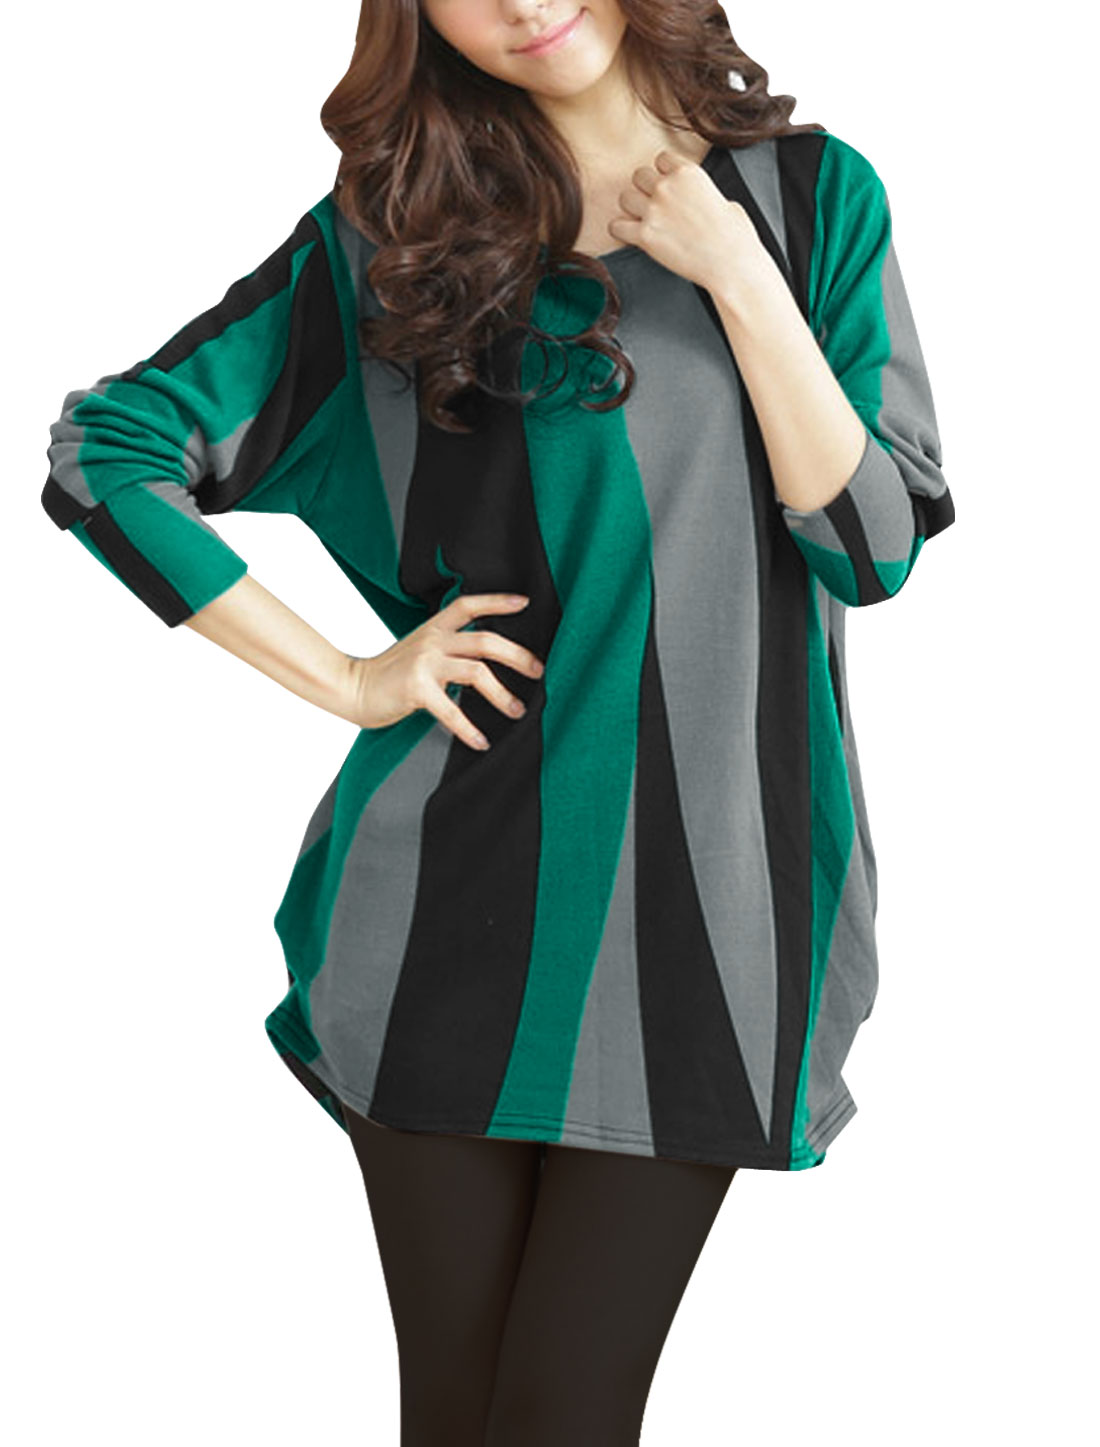 Woman Round Neck Green Black Contrast Color Striped Tunic Knitted Shirt S